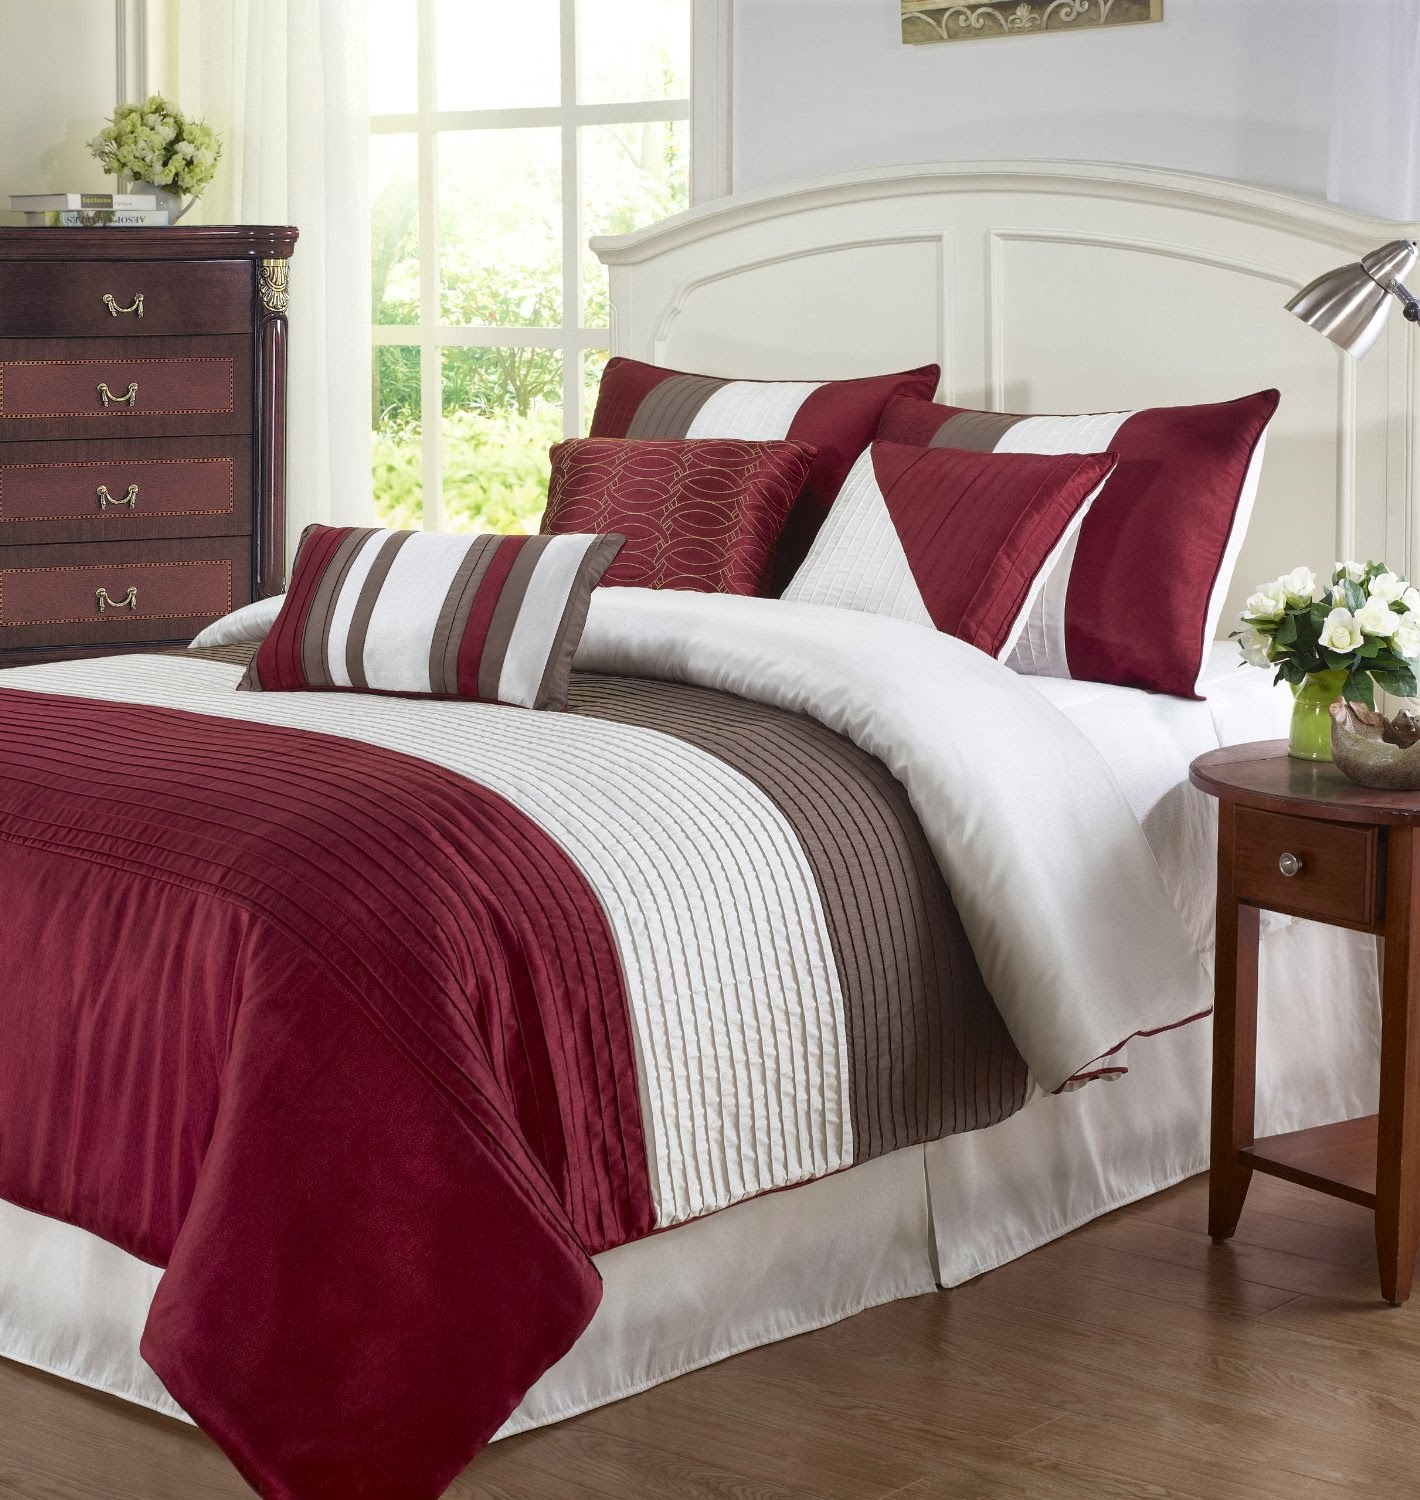 Bedspread designs texture - Cozy Beddings Tayler 7 Piece Comforter Set